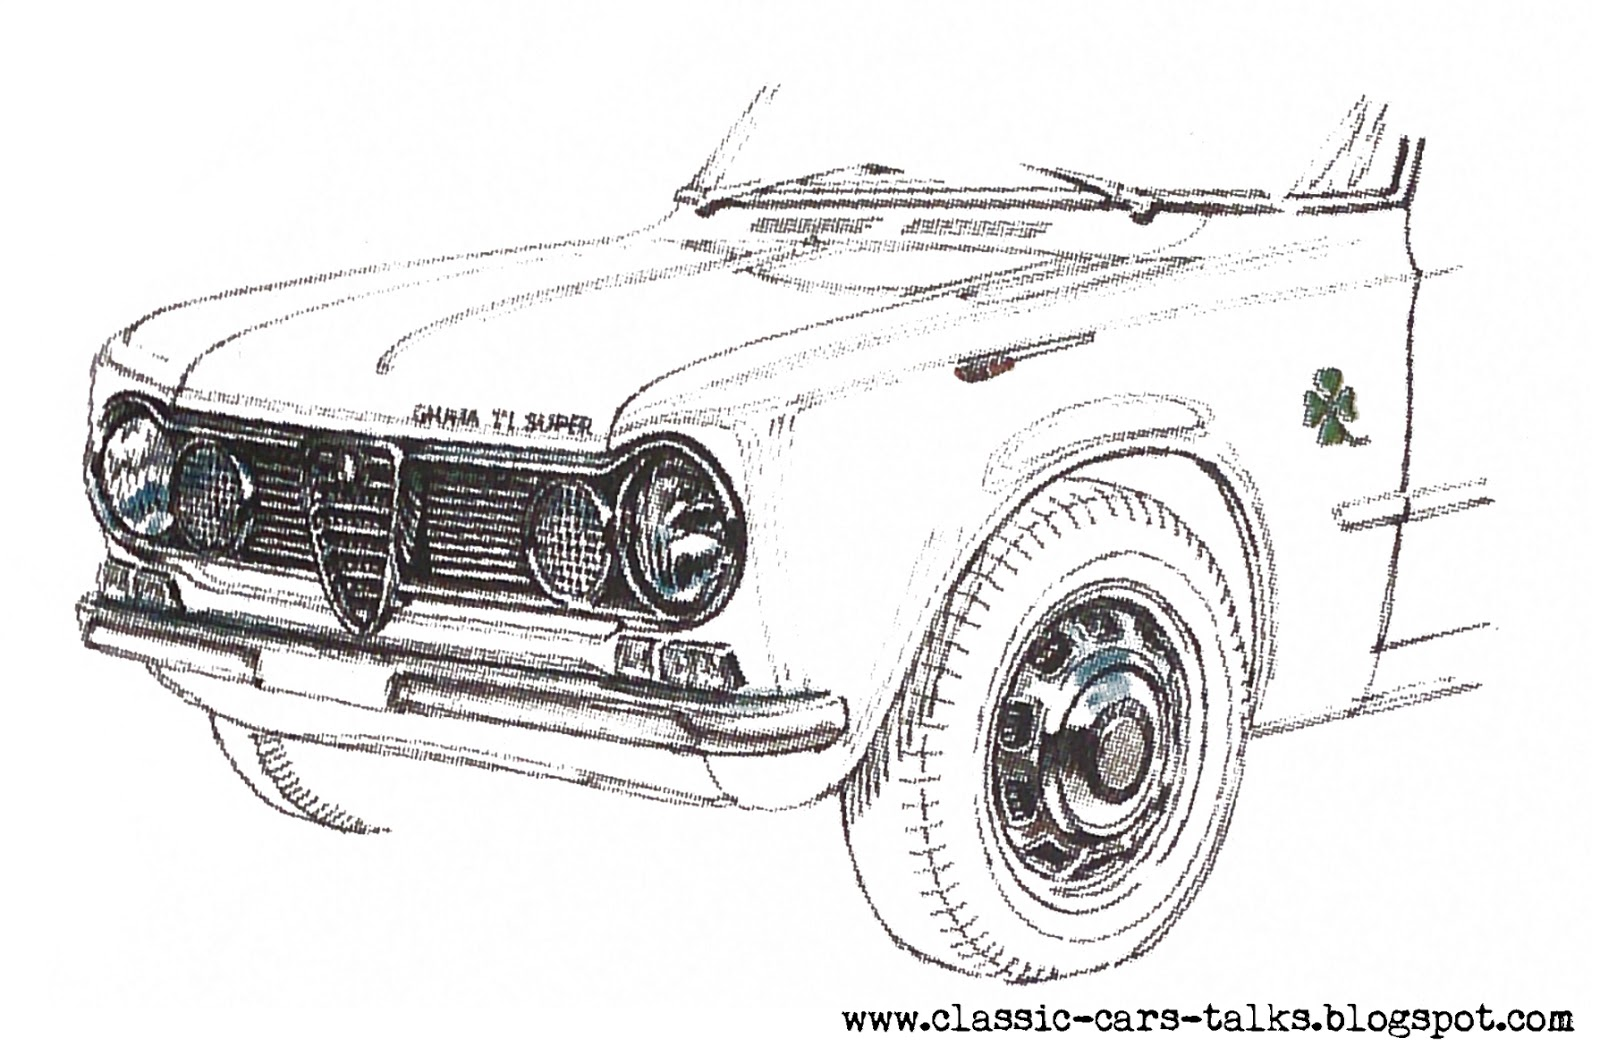 Classic Cars Talks The Alfa Romeo Giulia Timeline